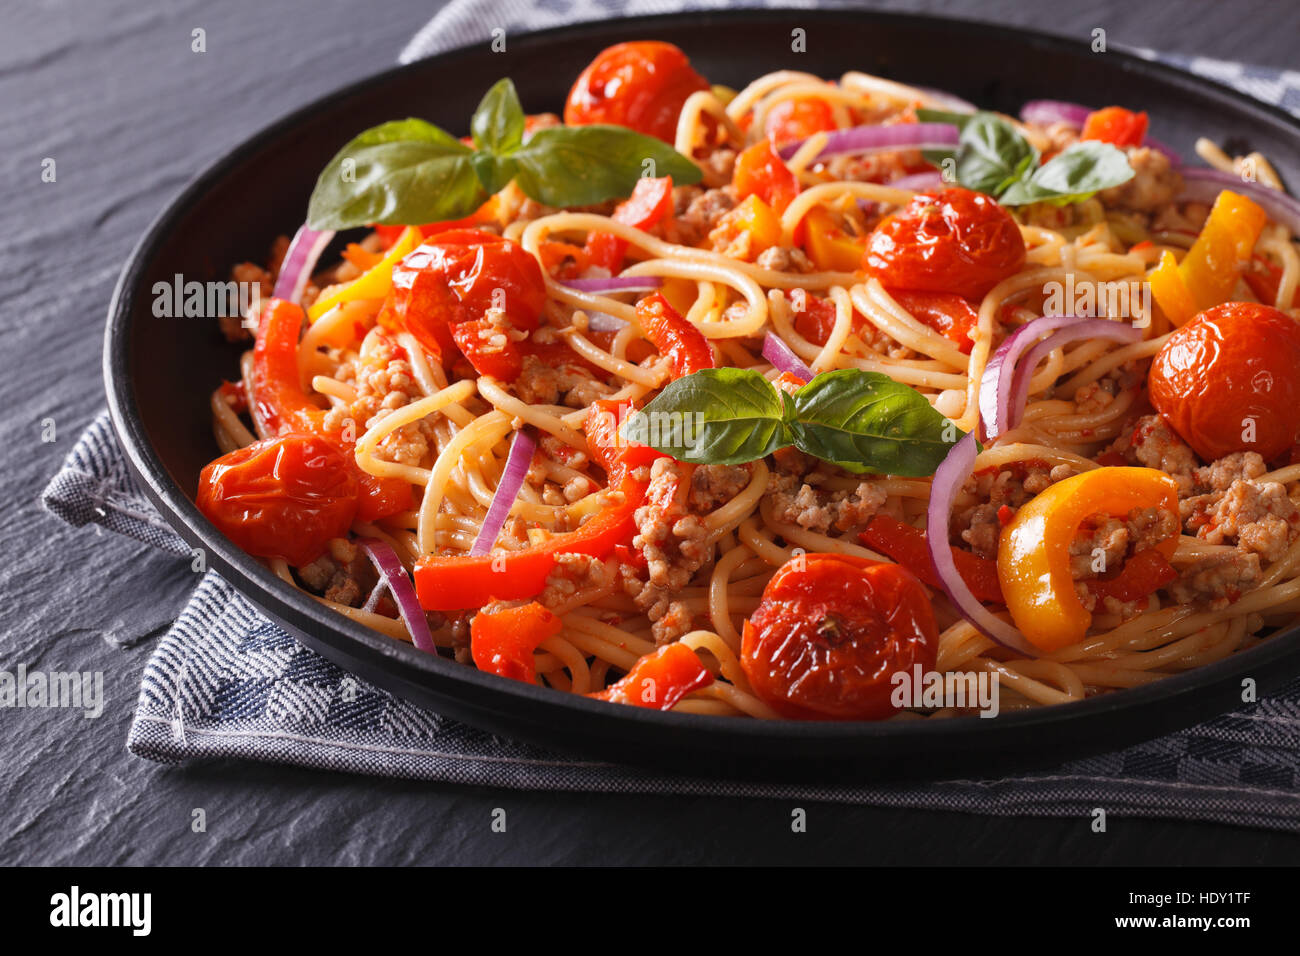 Italian food: pasta with minced meat and vegetables close-up. horizontal - Stock Image